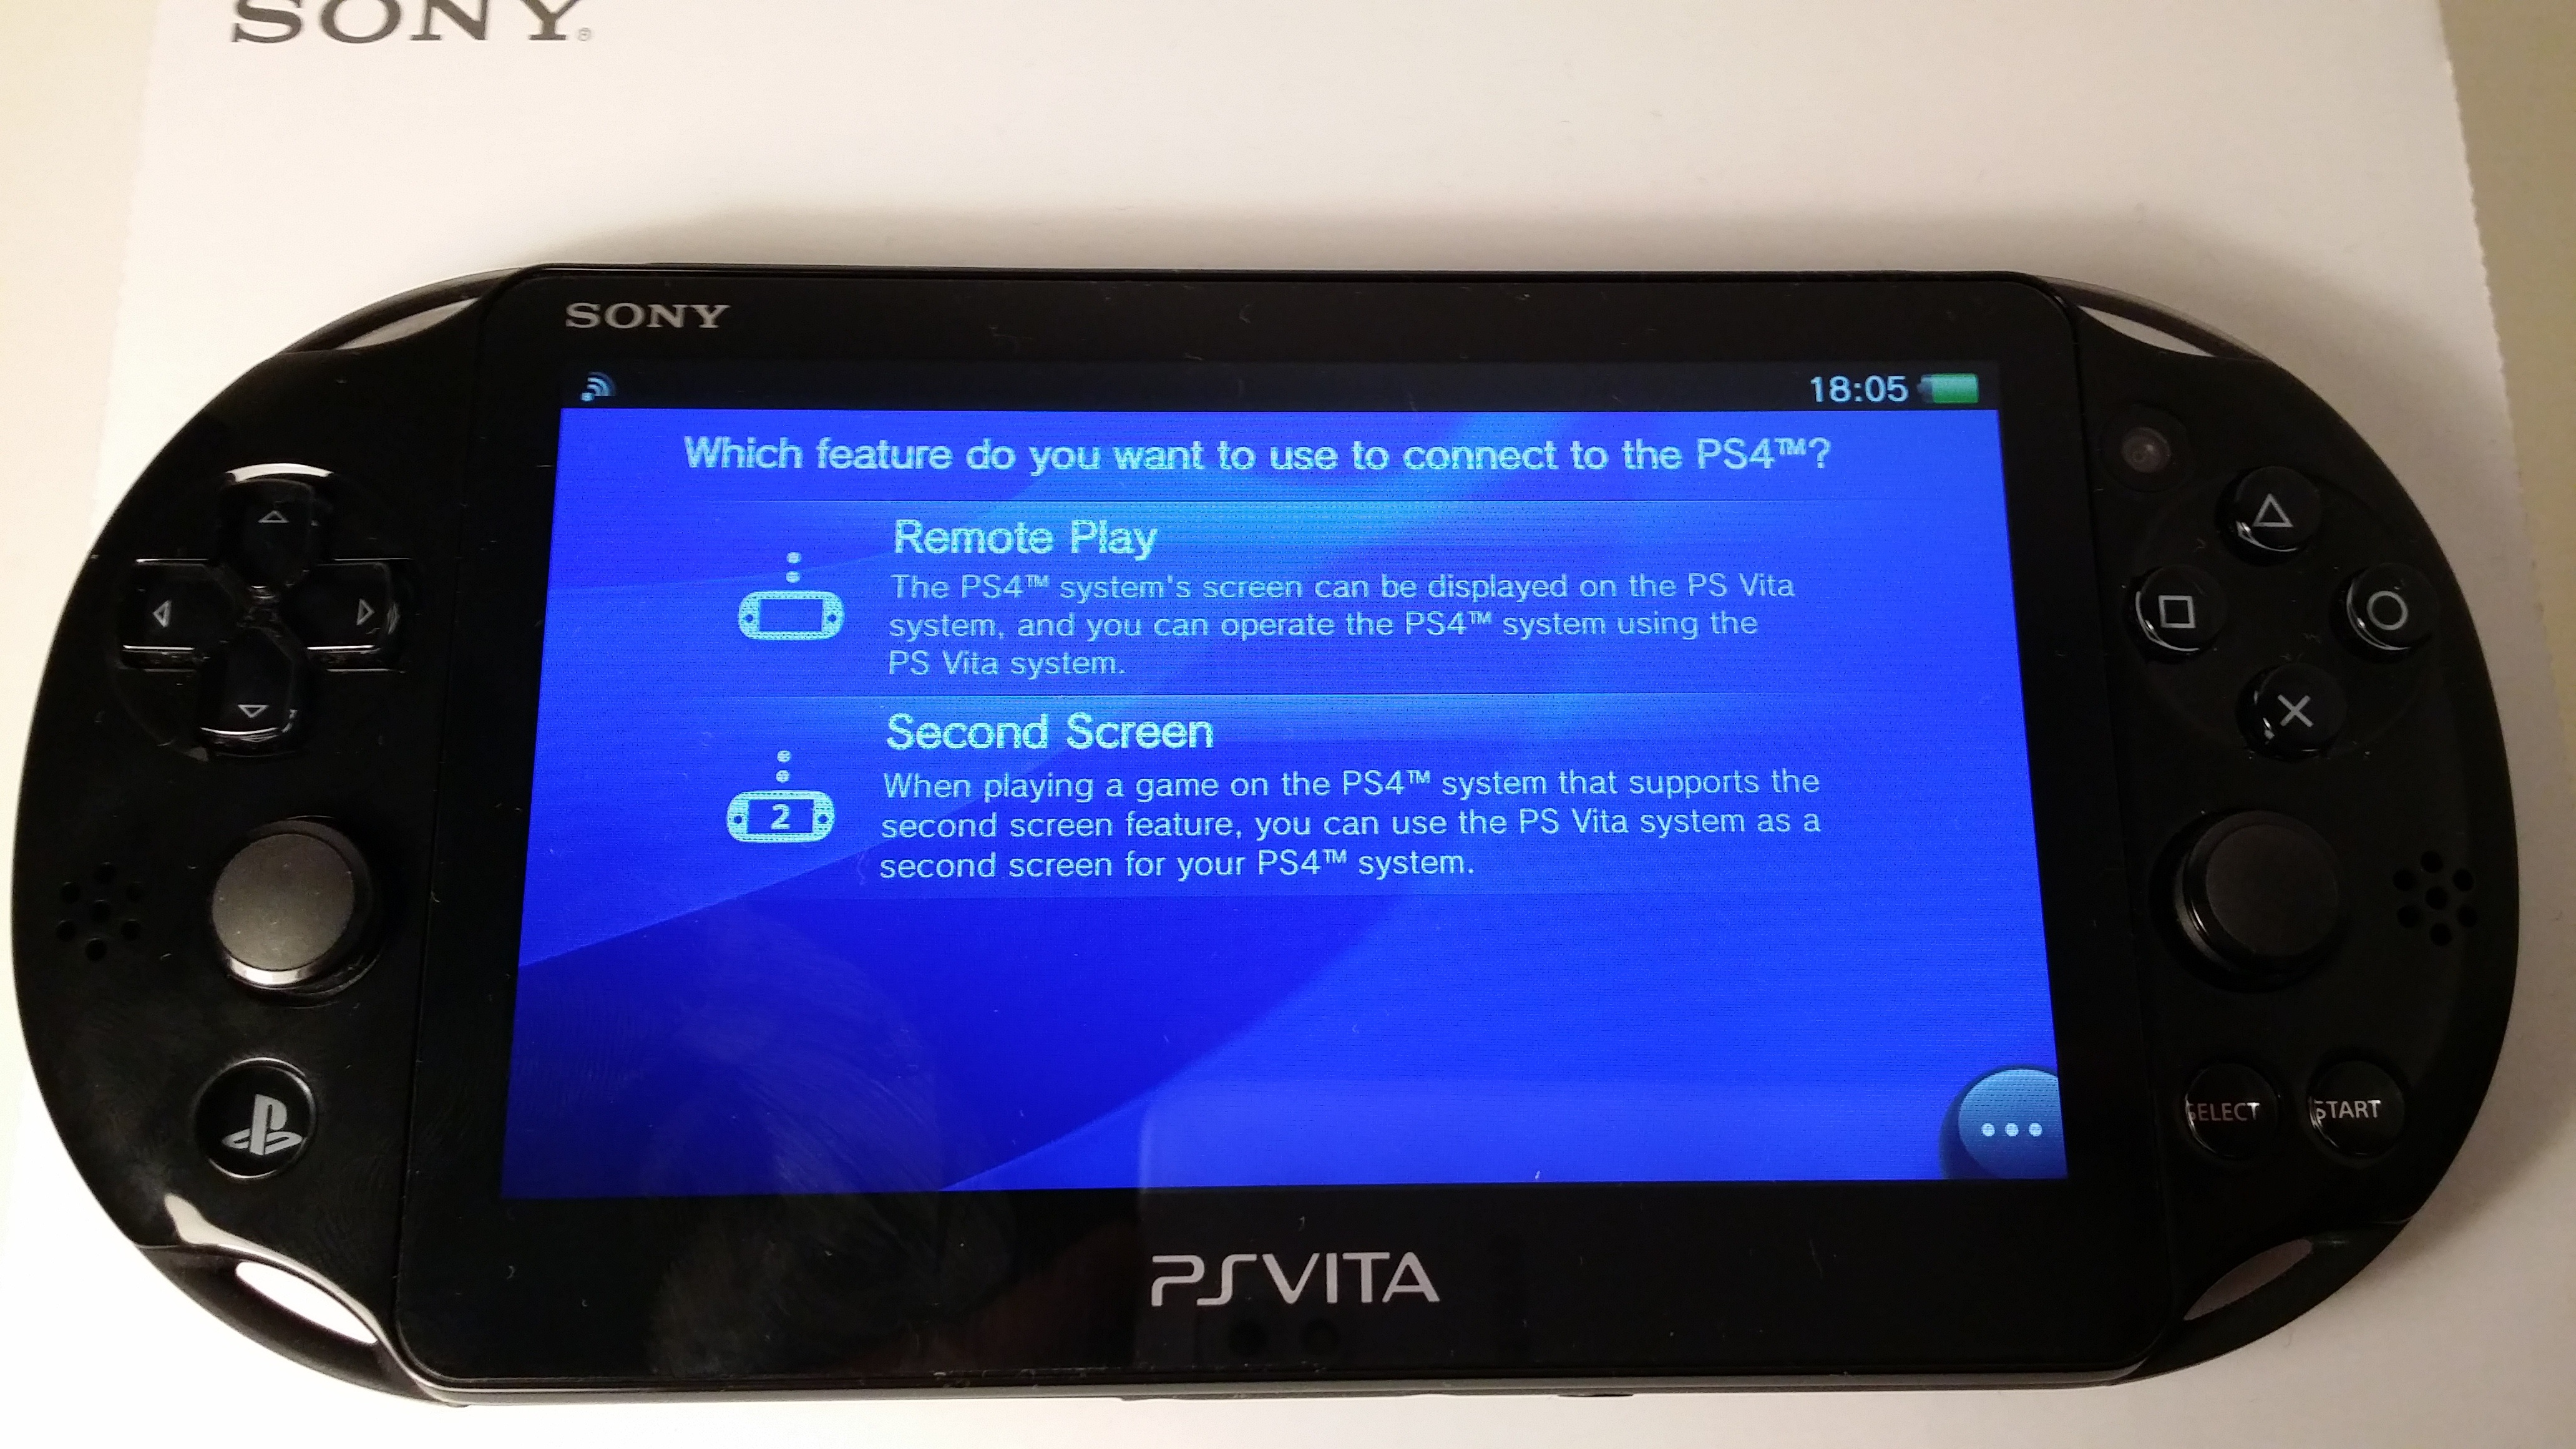 how to use internet on ps3